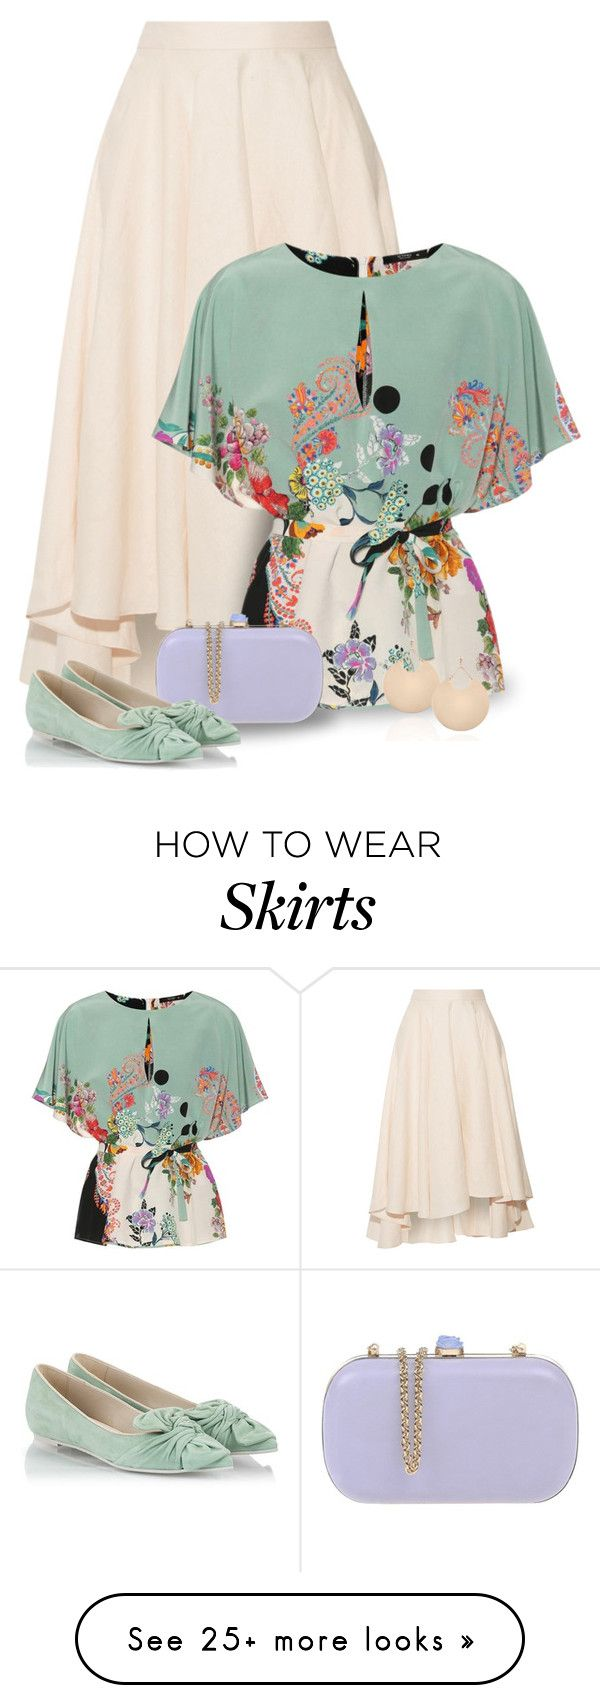 """Silk Top & Asymmetric Midi Skirt With Ballet Flats"" by majezy on Polyvore featuring Miguelina, Etro, RED Valentino and RAS"